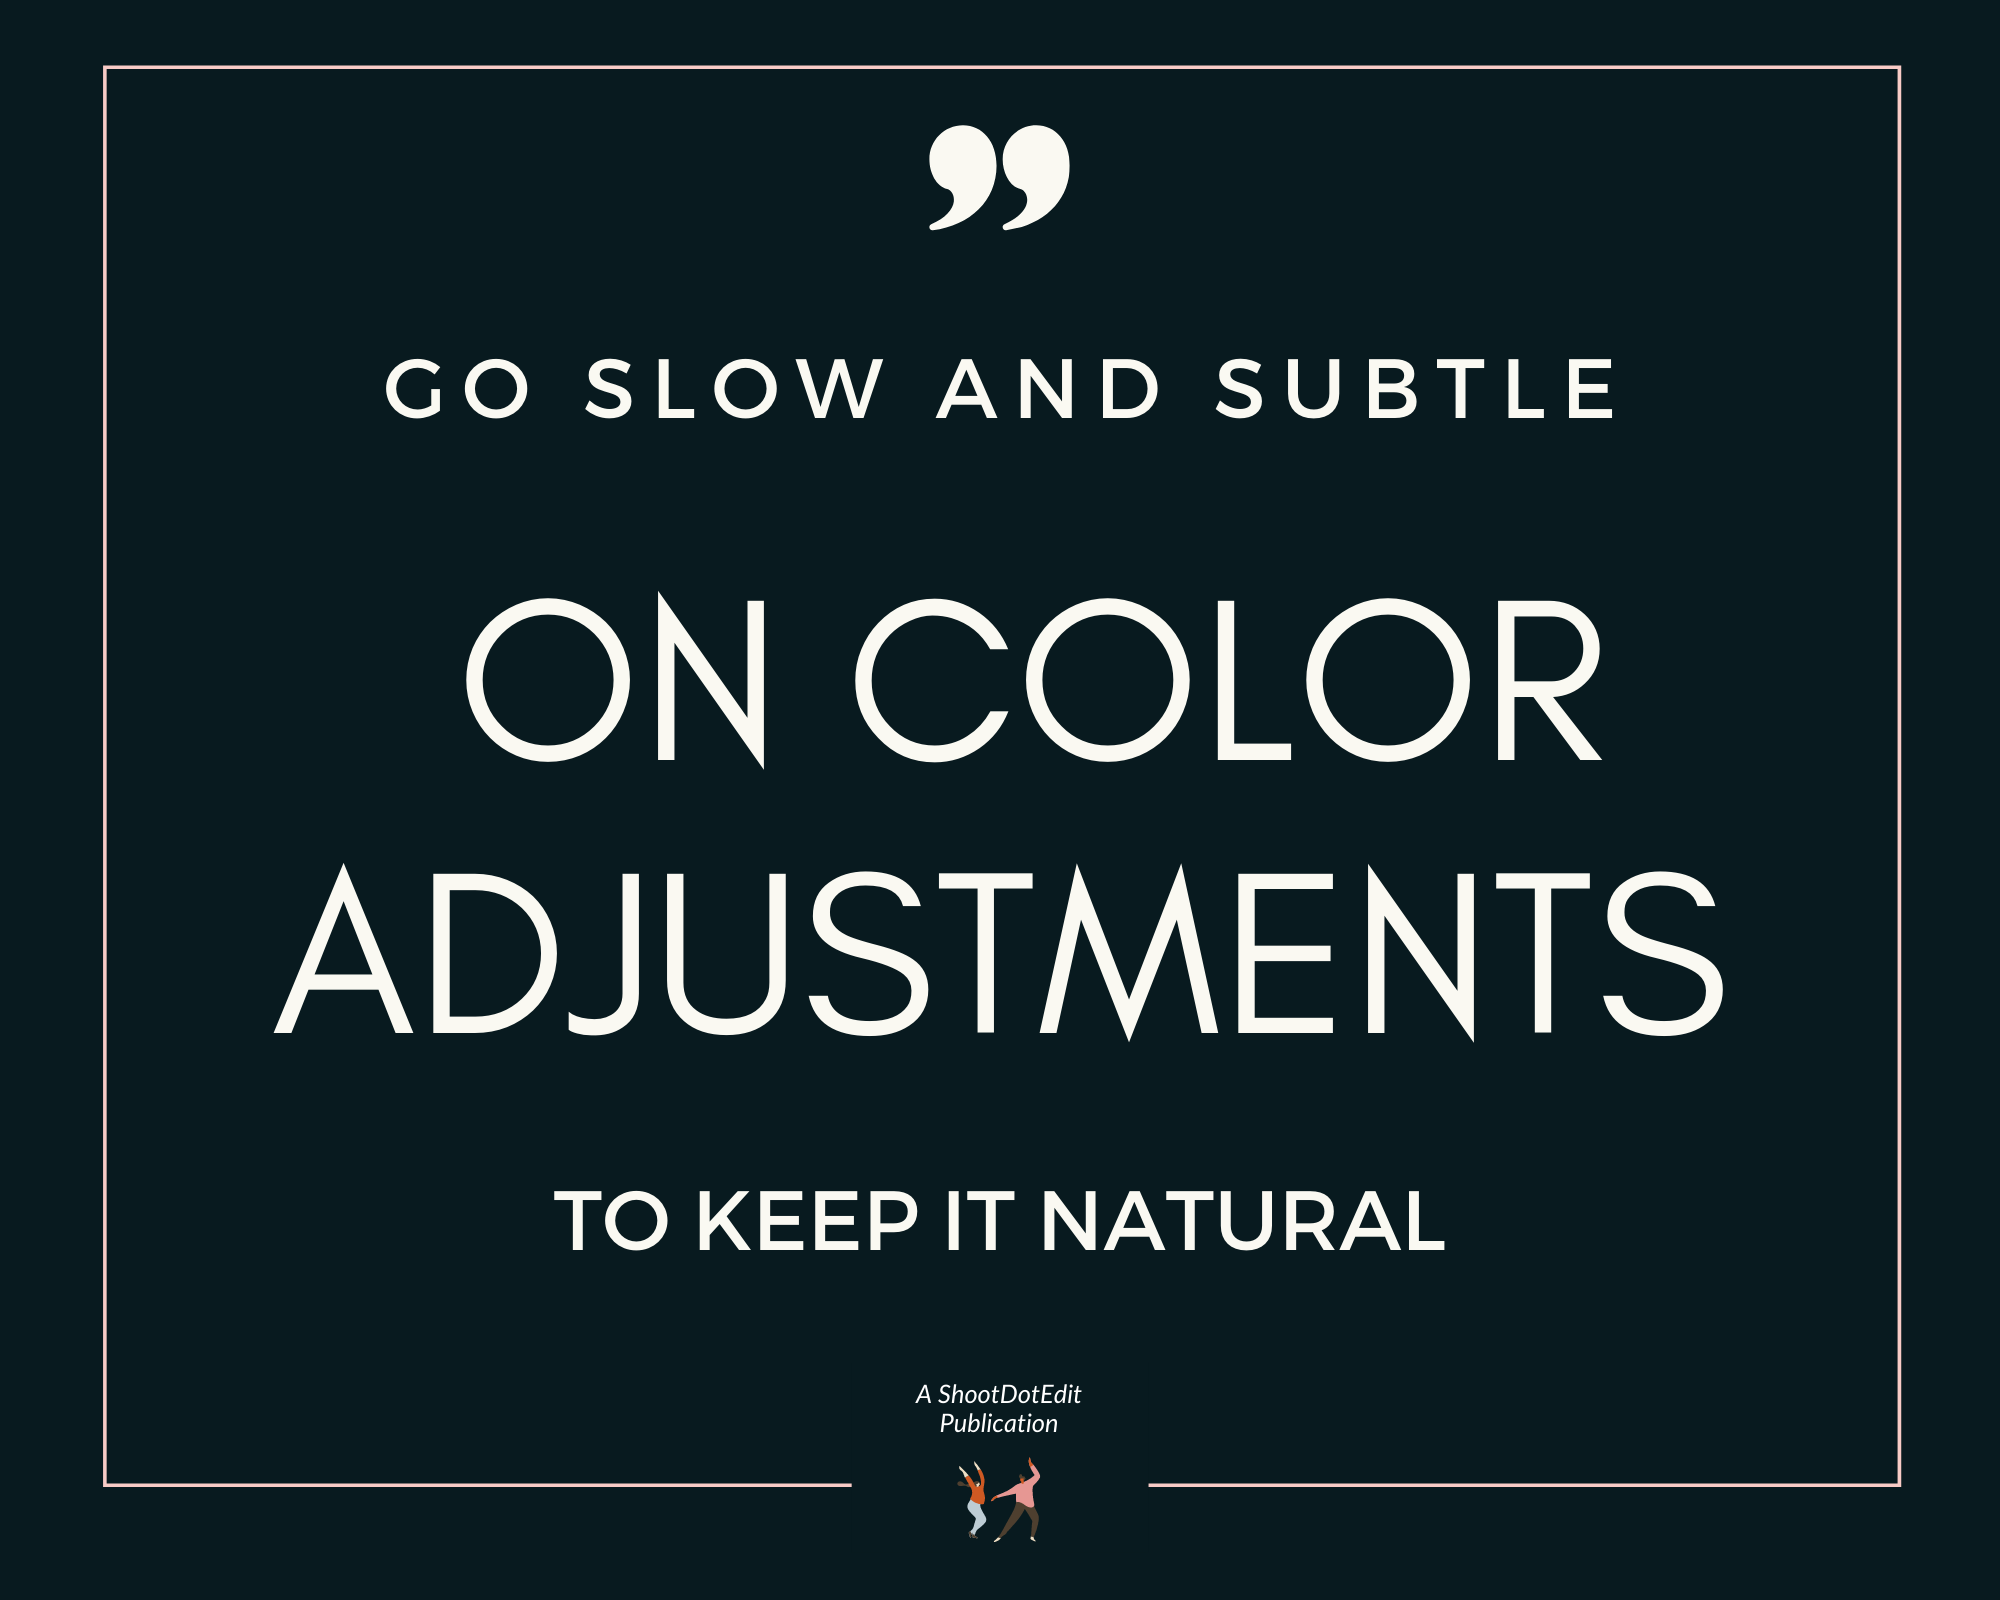 Infographic stating go slow and subtle on color adjustments to keep it natural